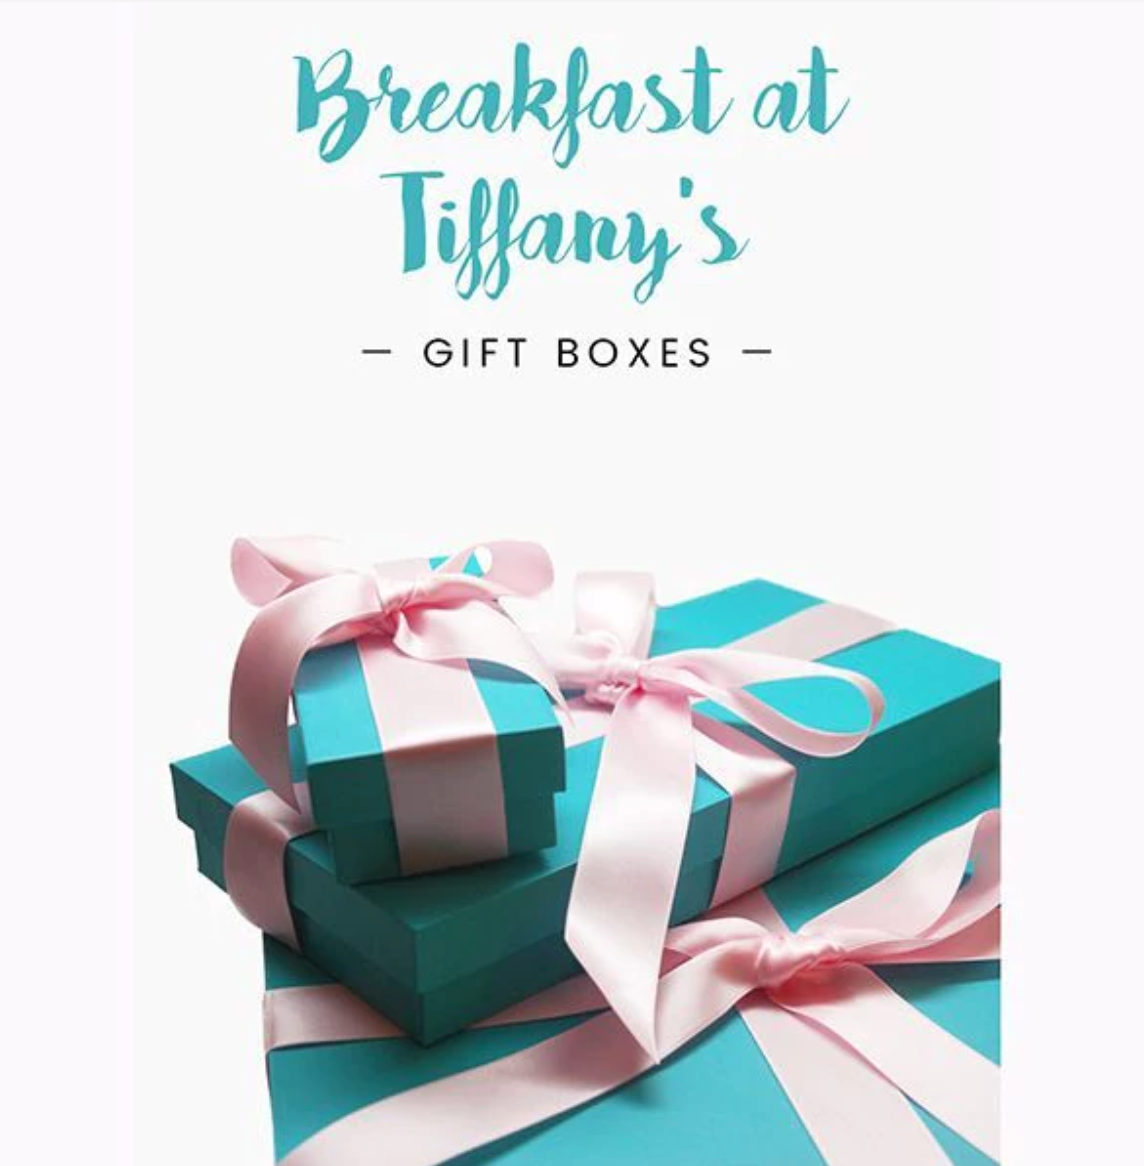 416a5cf172 Audrey Hepburn - the Breakfast at Tiffany's Gift Boxes ∣ Utopiat